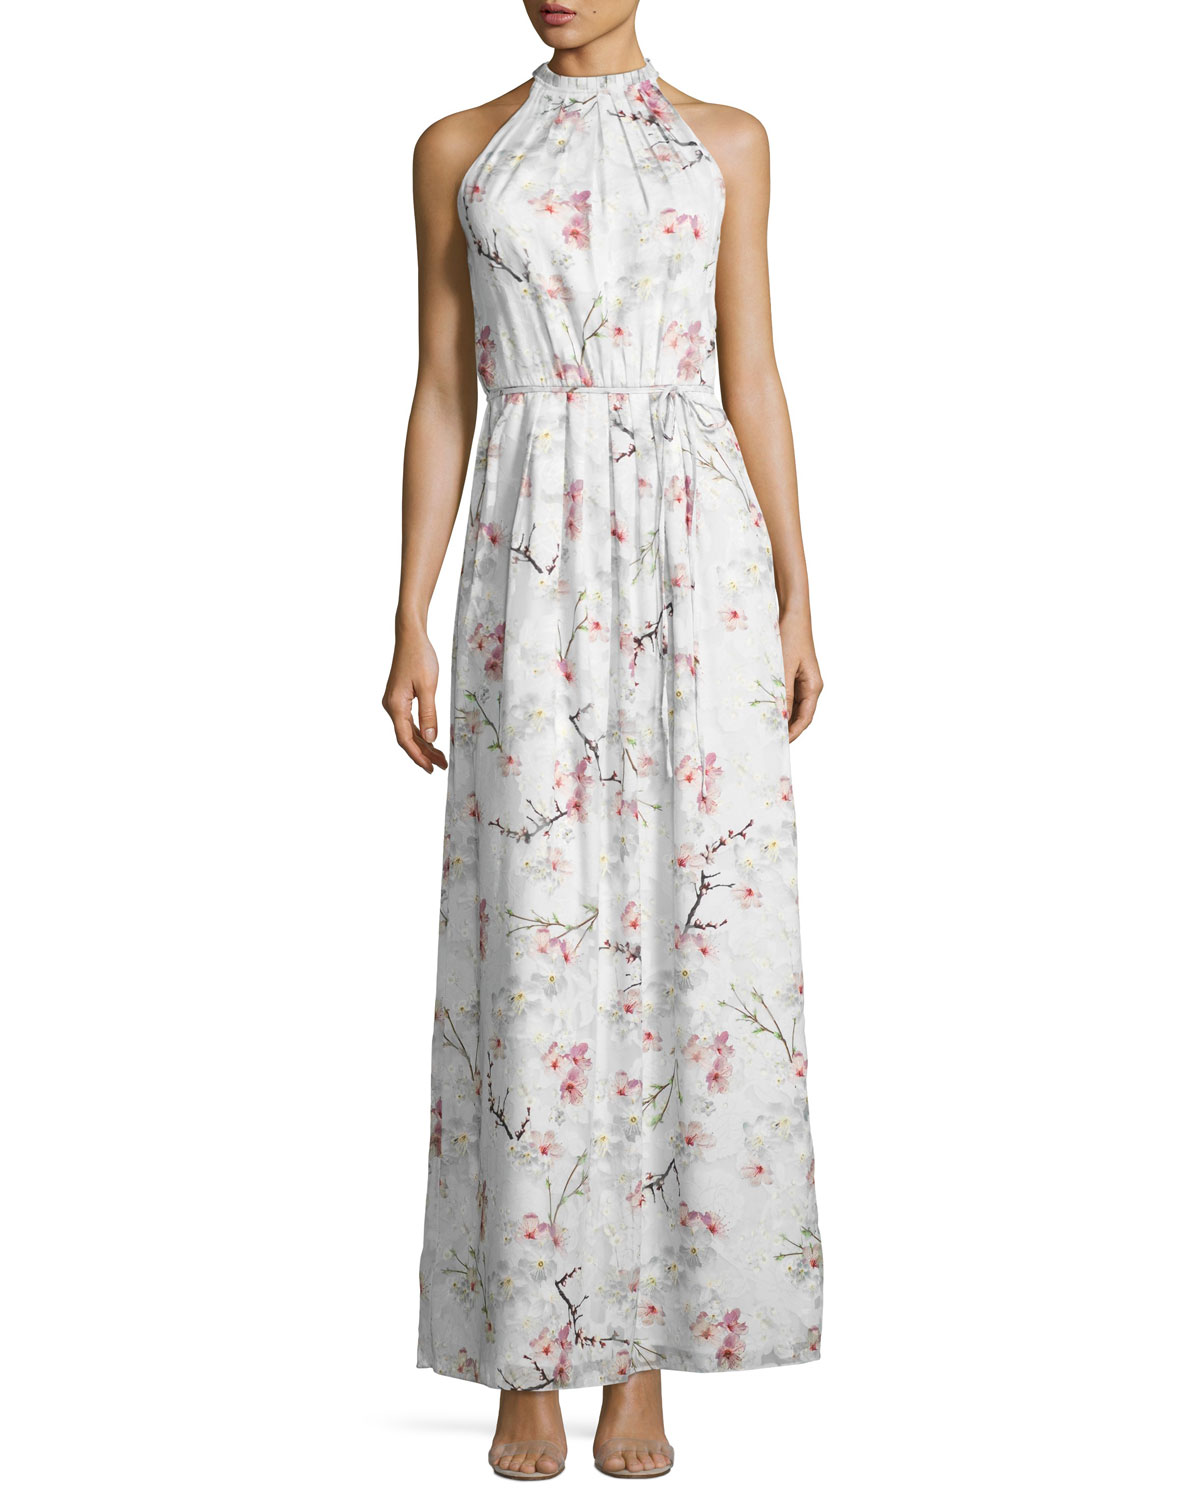 eda532bbcecd Ted Baker London Elynor Cherry Blossom Maxi Dress, Light Gray ...